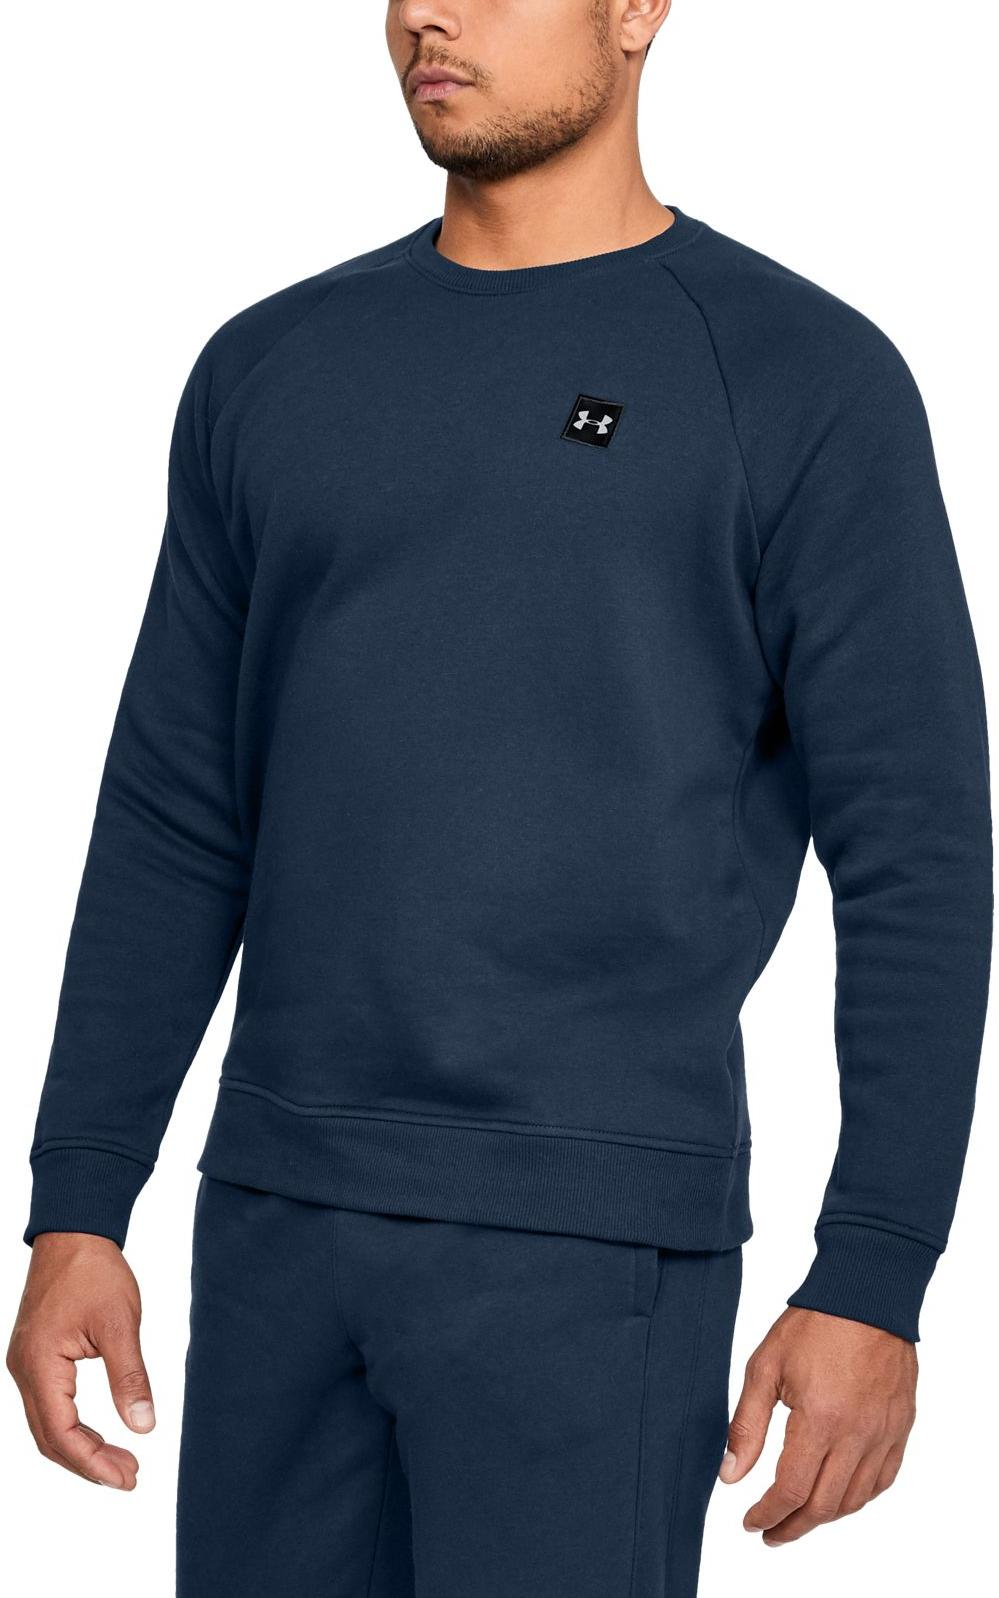 Hanorac Under Armour RIVAL FLEECE CREW